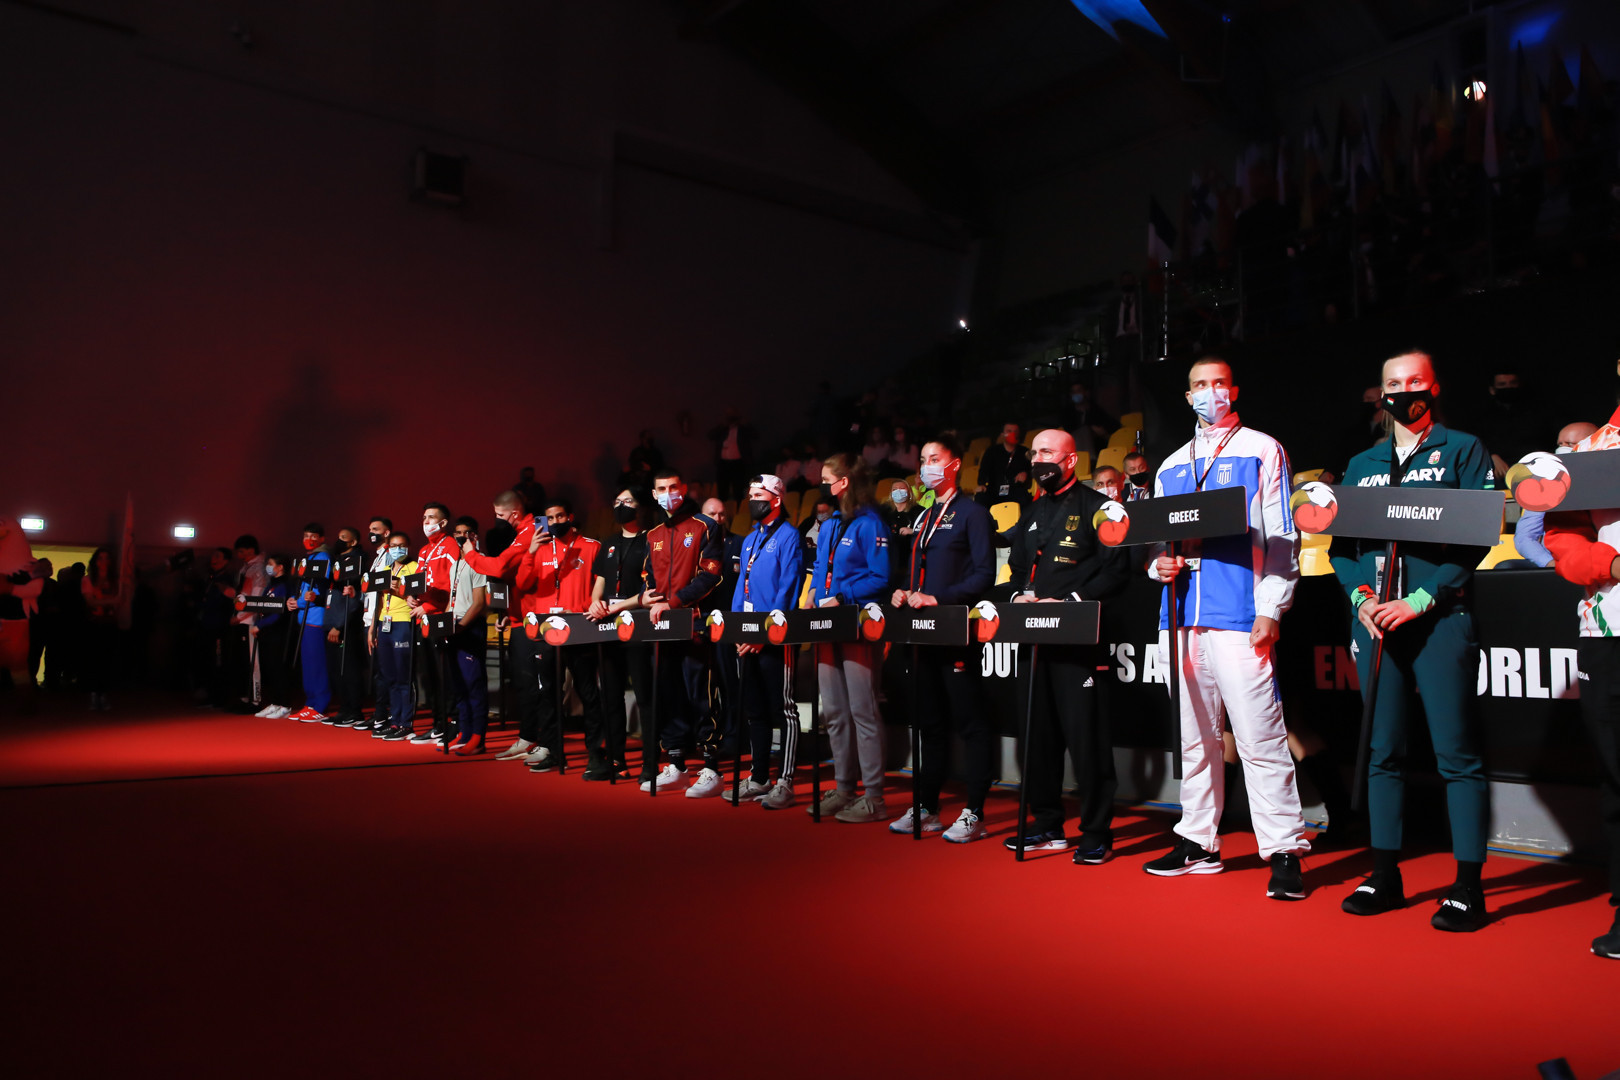 The AIBA World Youth Boxing Championship opened in Kielce in Poland with competitors from 52 countries ©AIBA